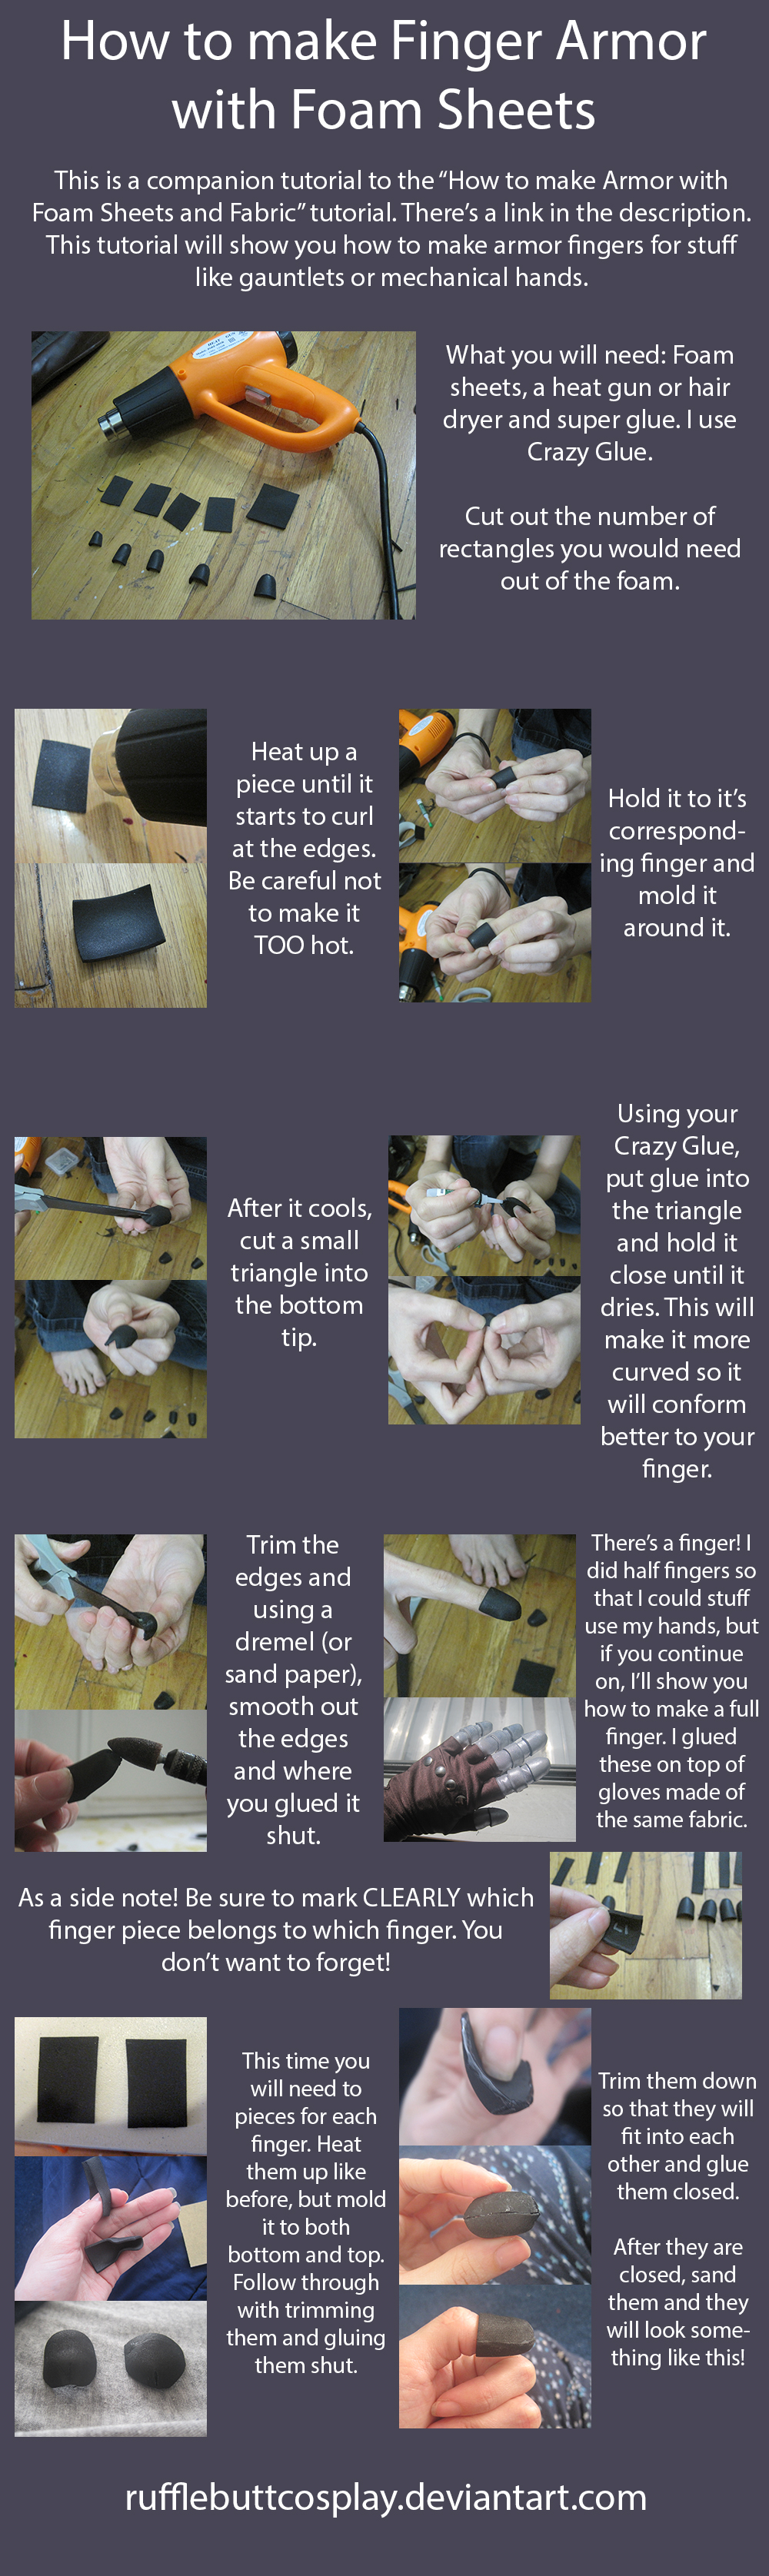 How to make Finger Armor with Foam Sheets